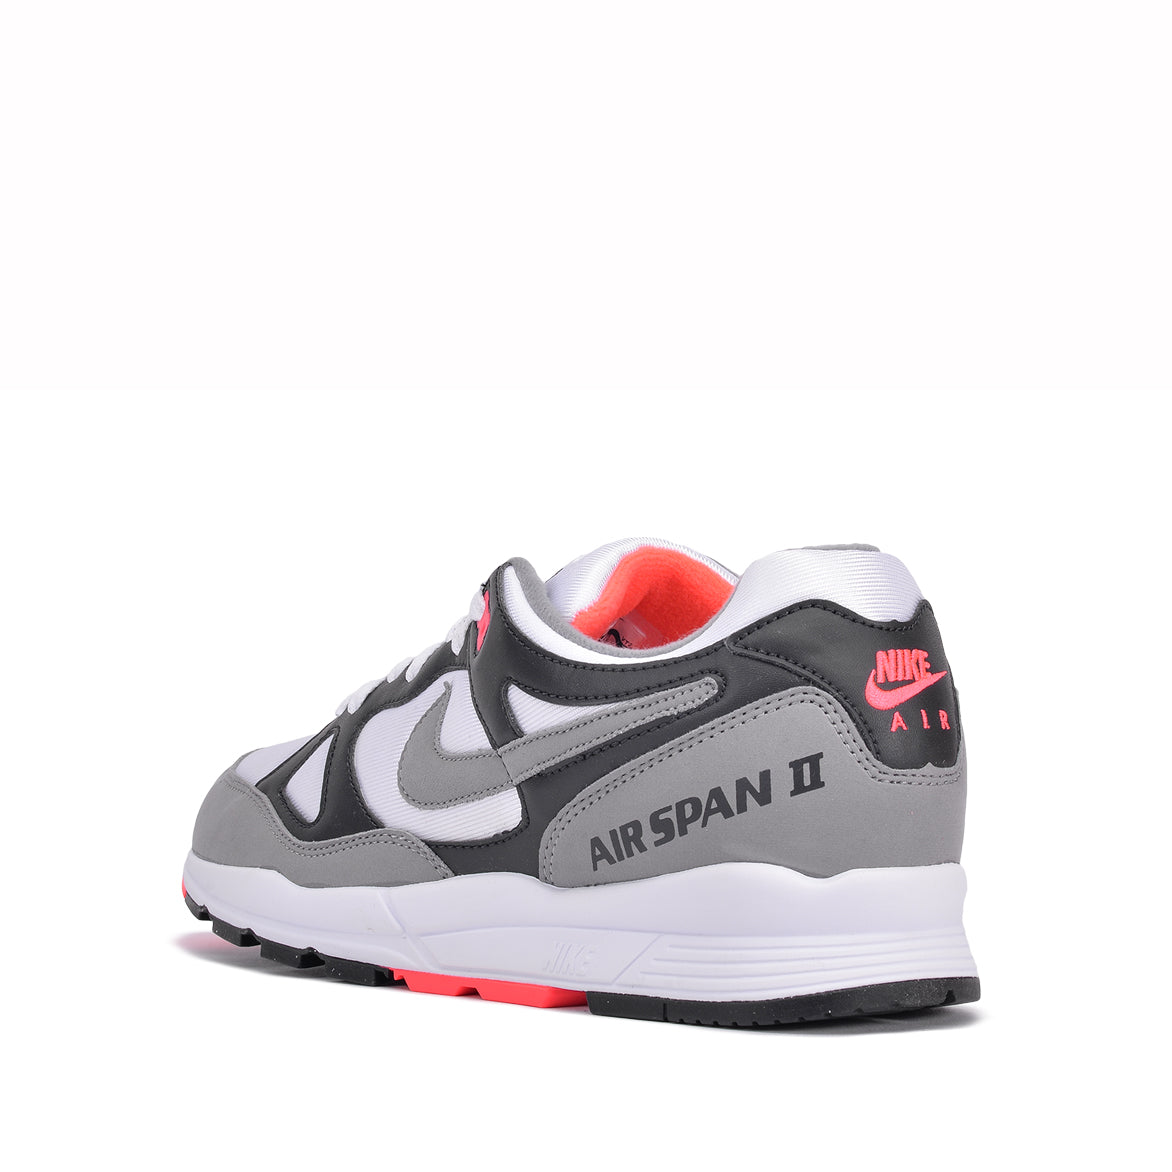 AIR SPAN II - BLACK / DUST / SOLAR RED